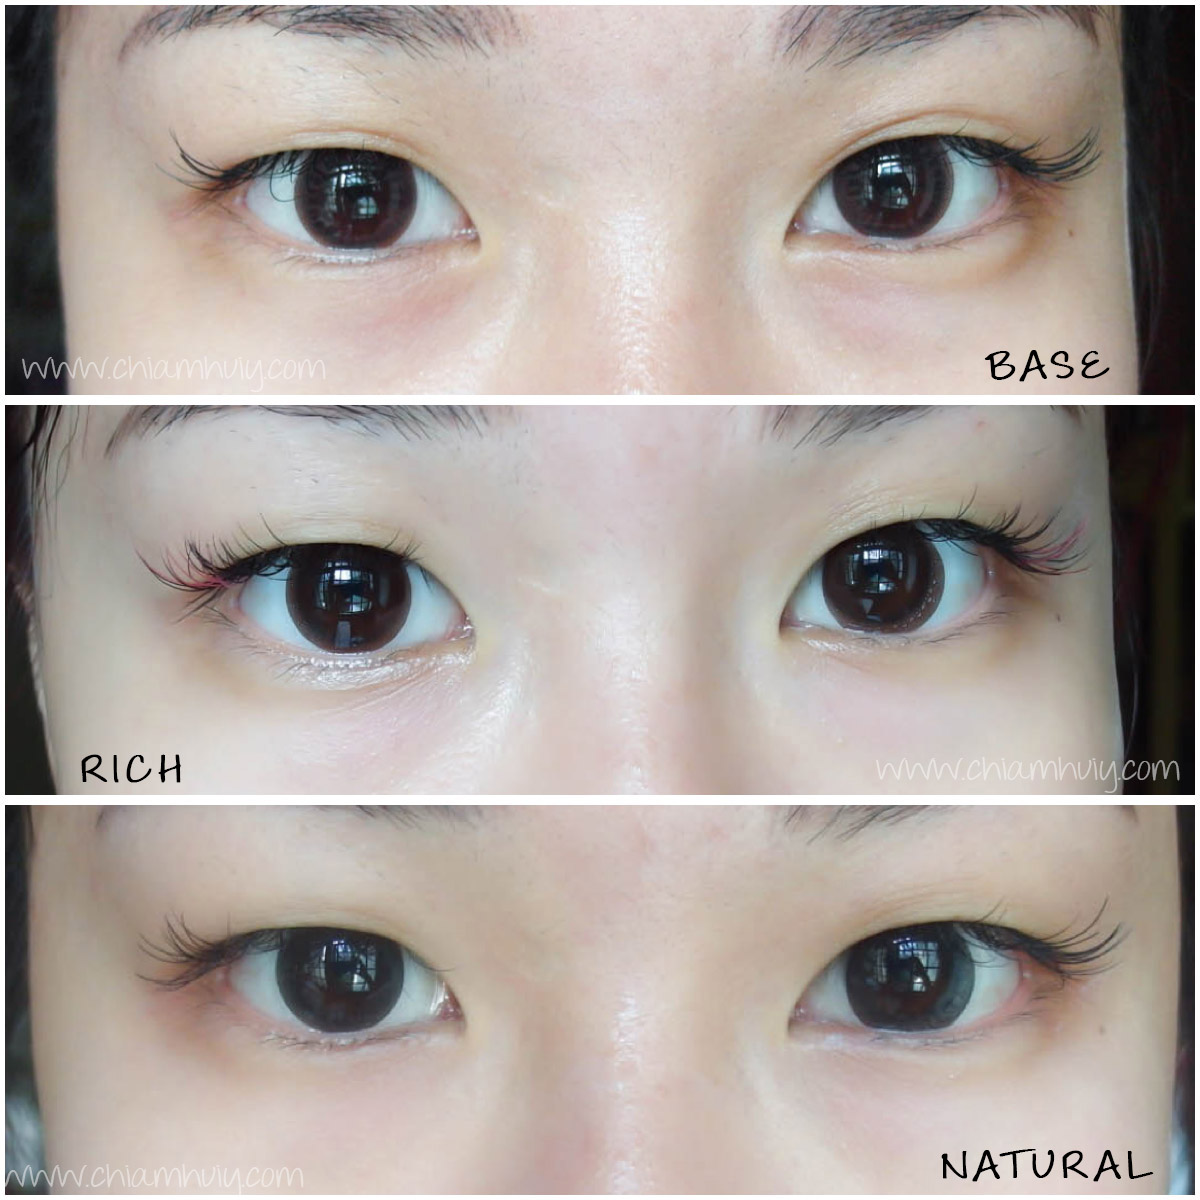 Seed Eye Coffret Cosmetic Contact Lenses Review Celine